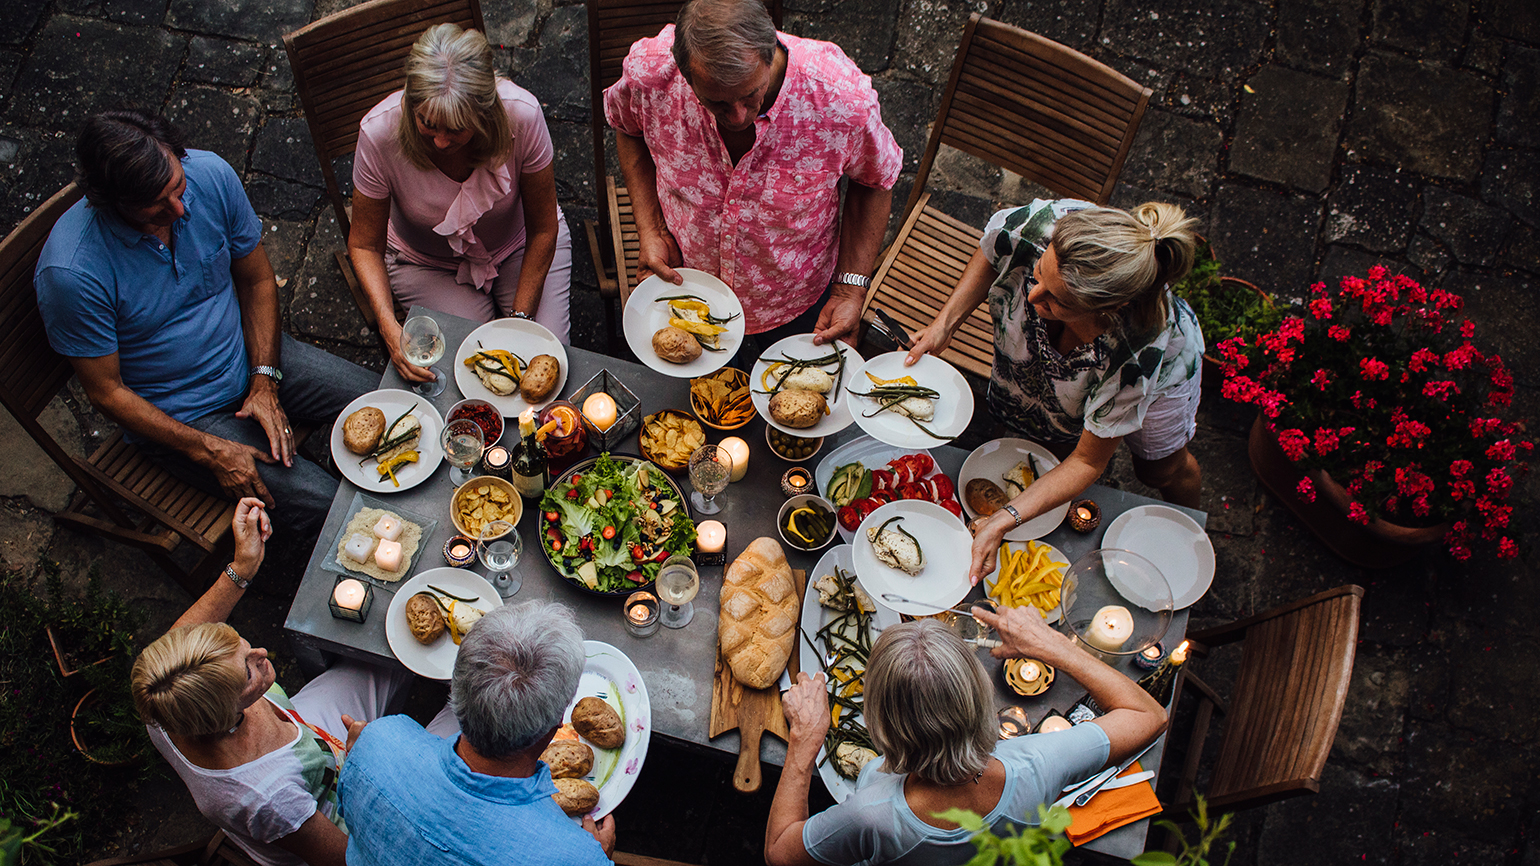 Friends gather around a dinner table